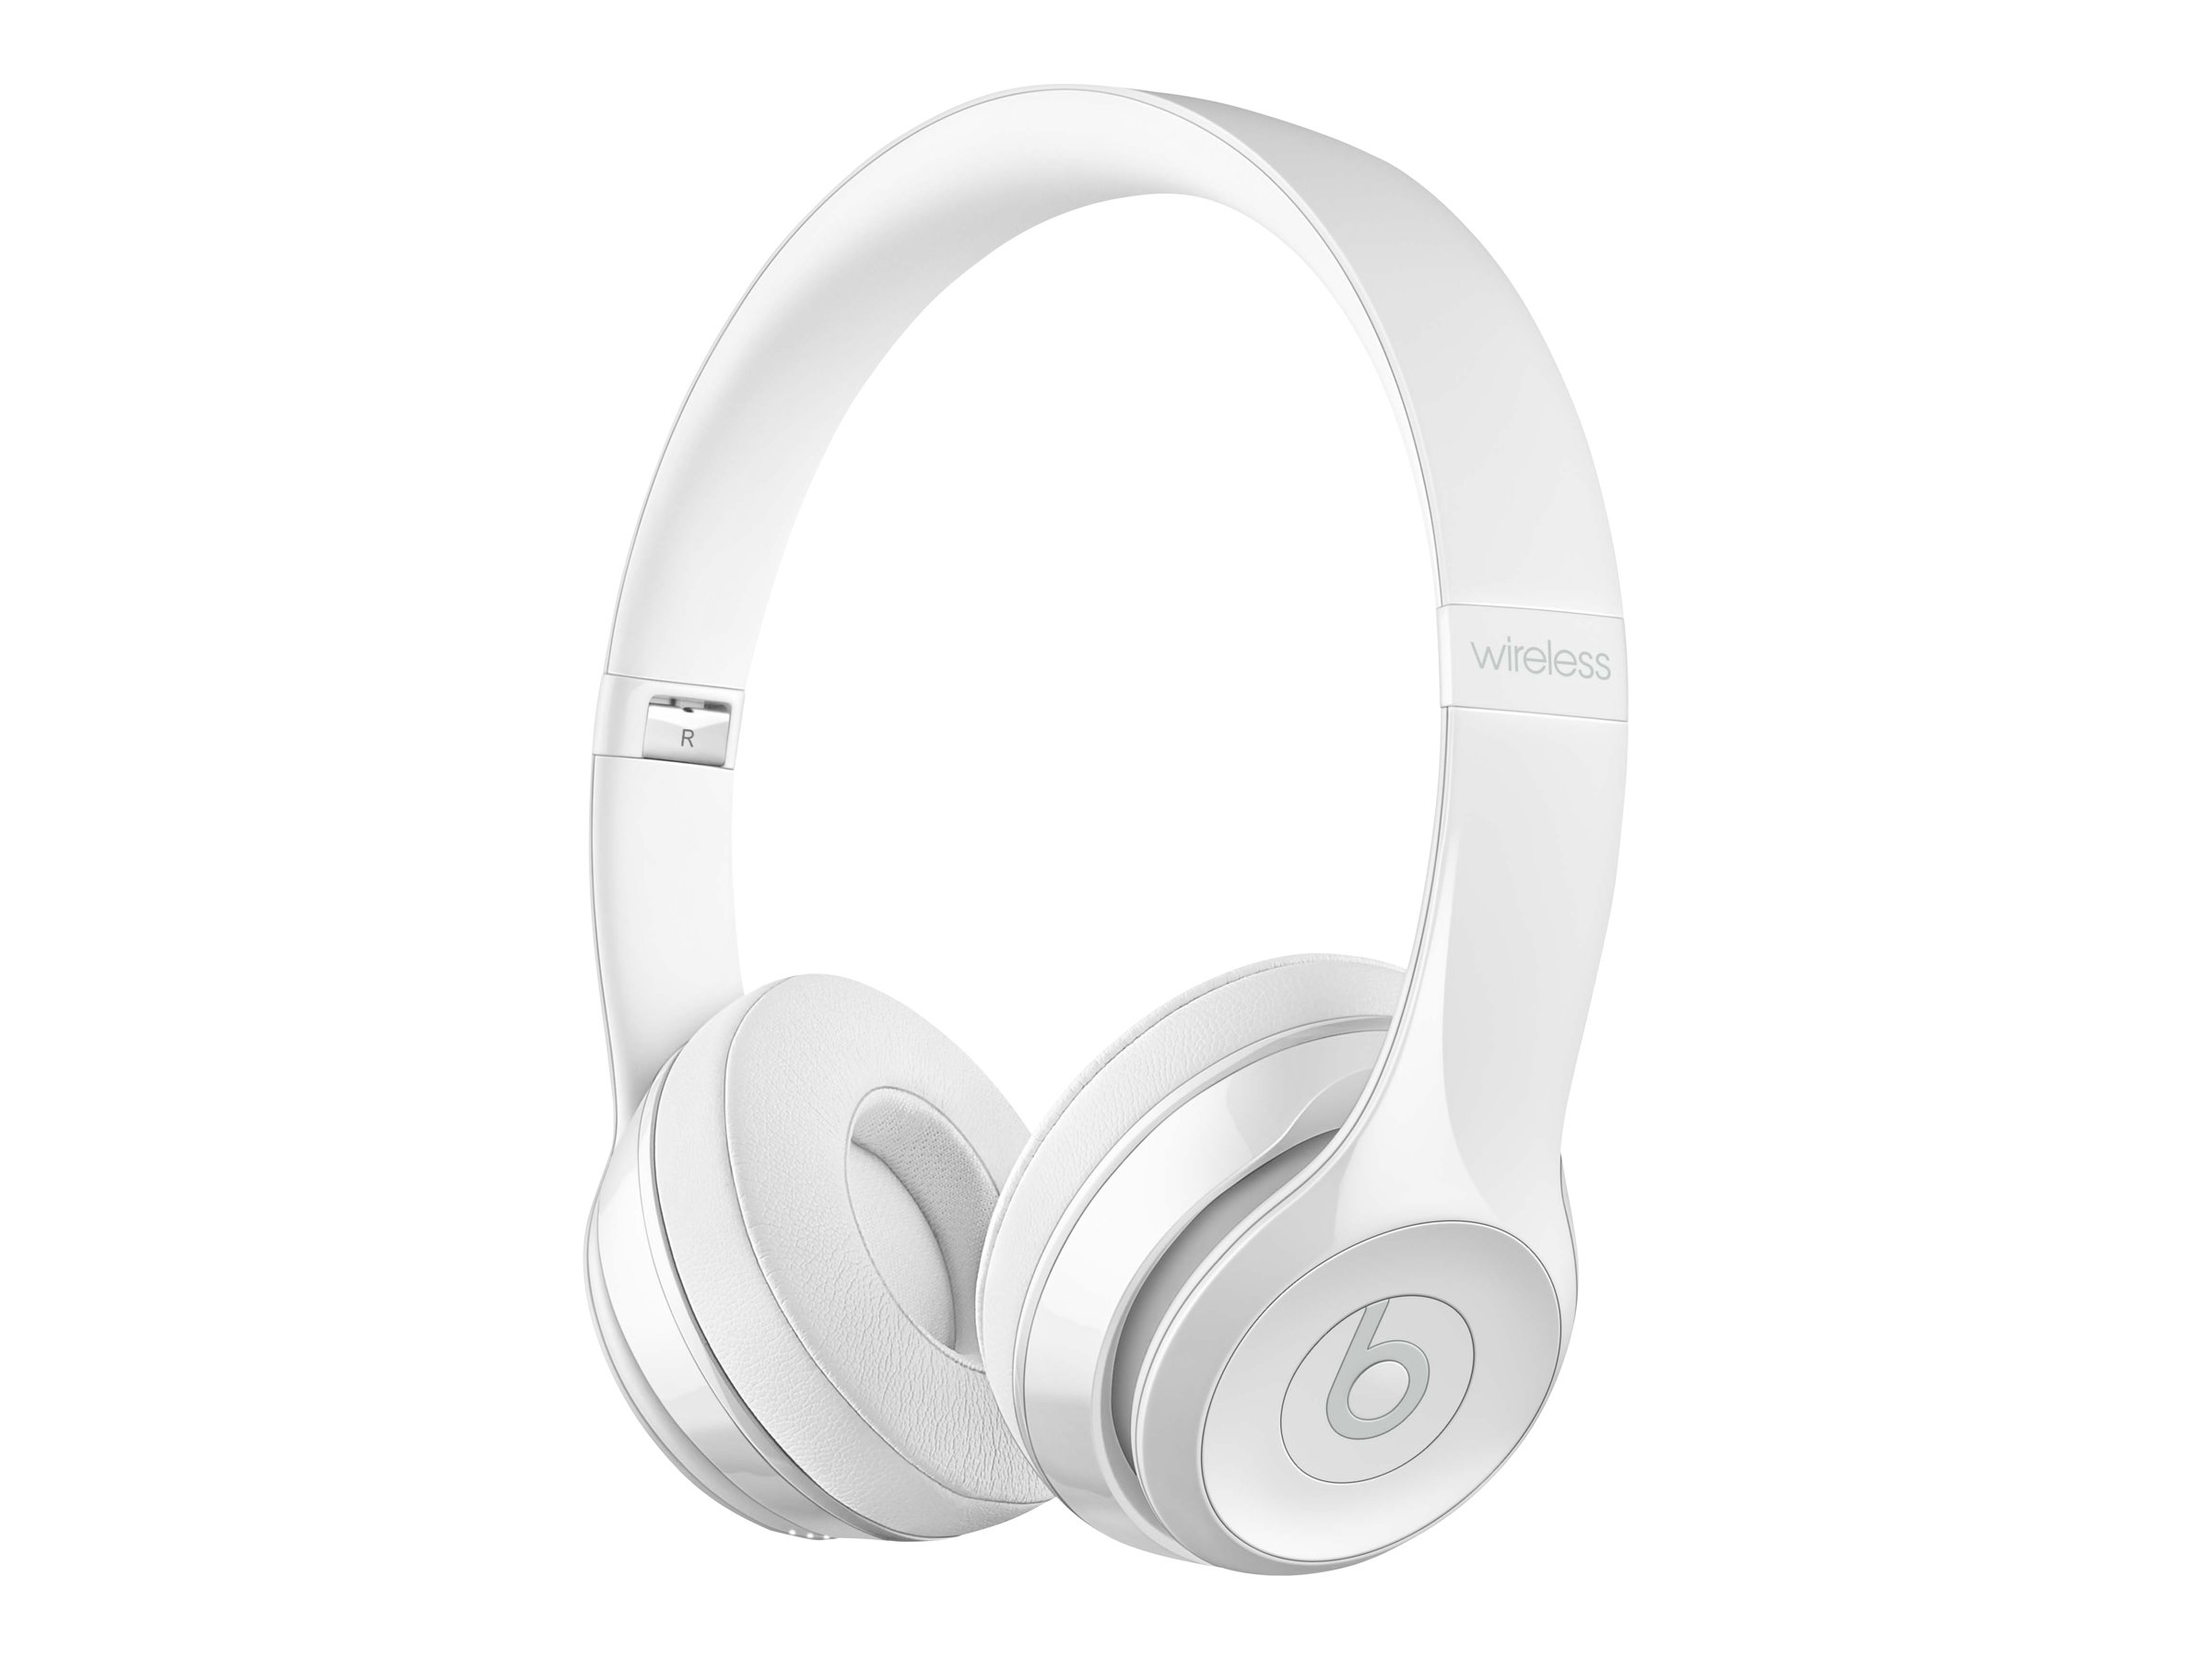 Beats Solo3 - Kopfhörer mit Mikrofon - On-Ear - Bluetooth - kabellos - White Gloss